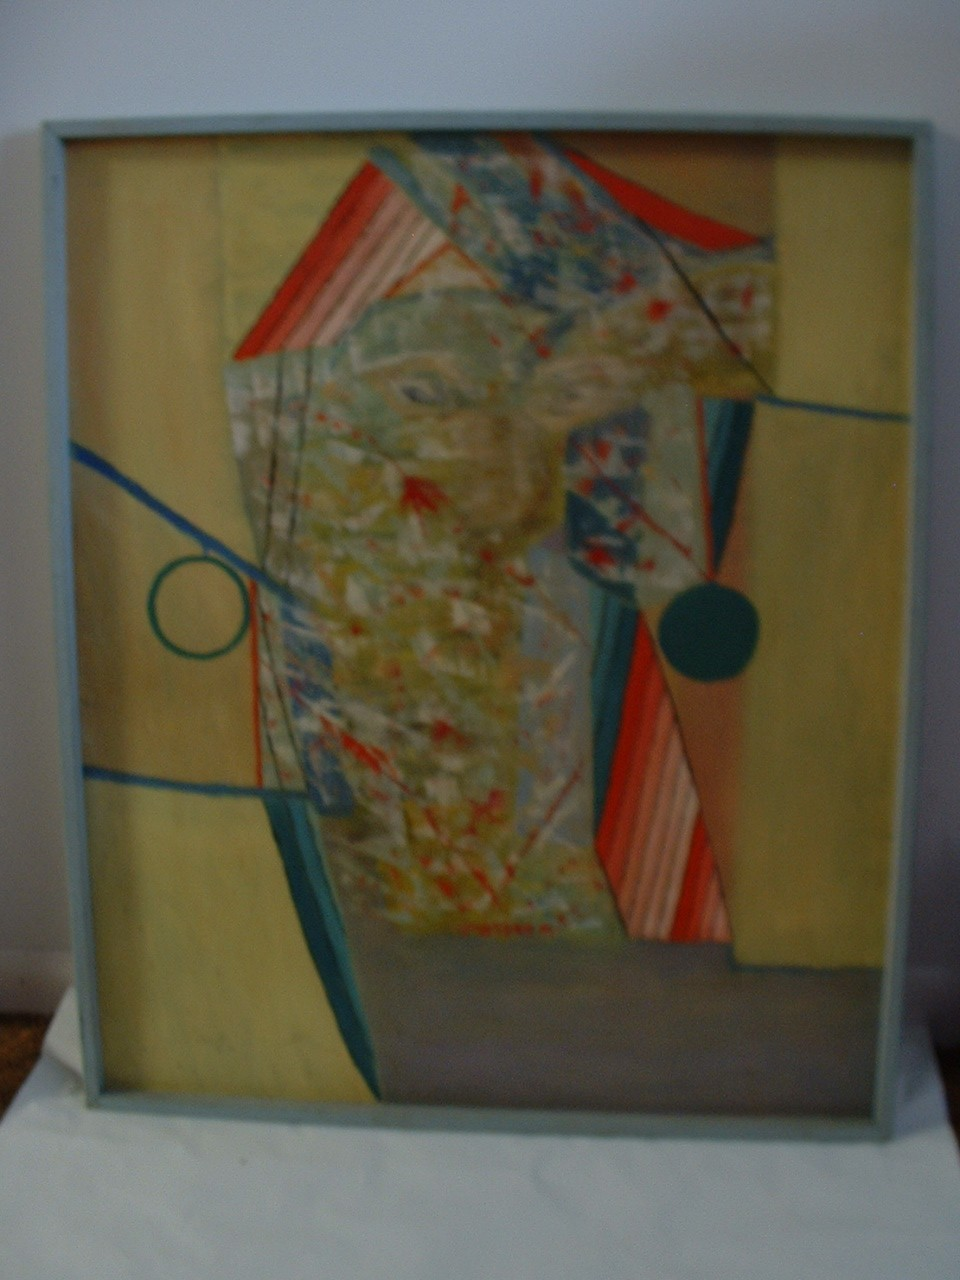 "Large 31"" x 26"" Original Oil on Hard Board Abstract signed by Artist Metzger 60'"